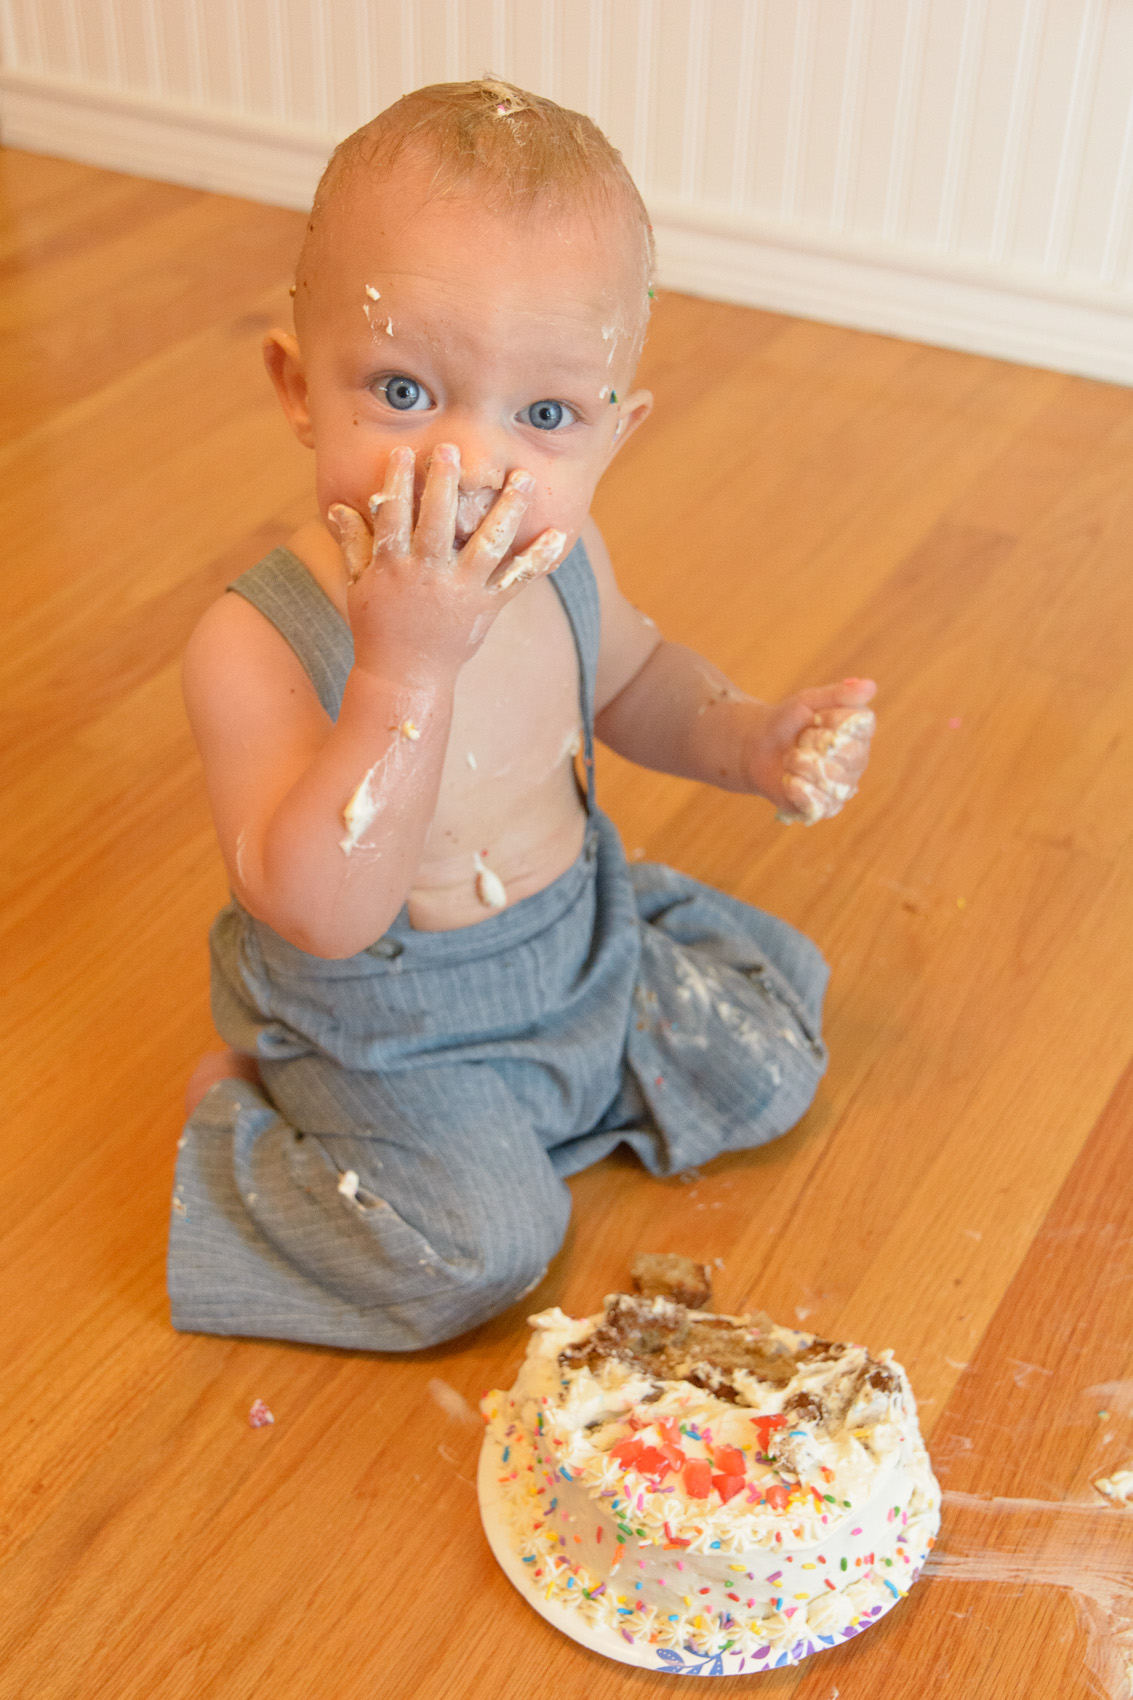 baby licking frosting off his palm